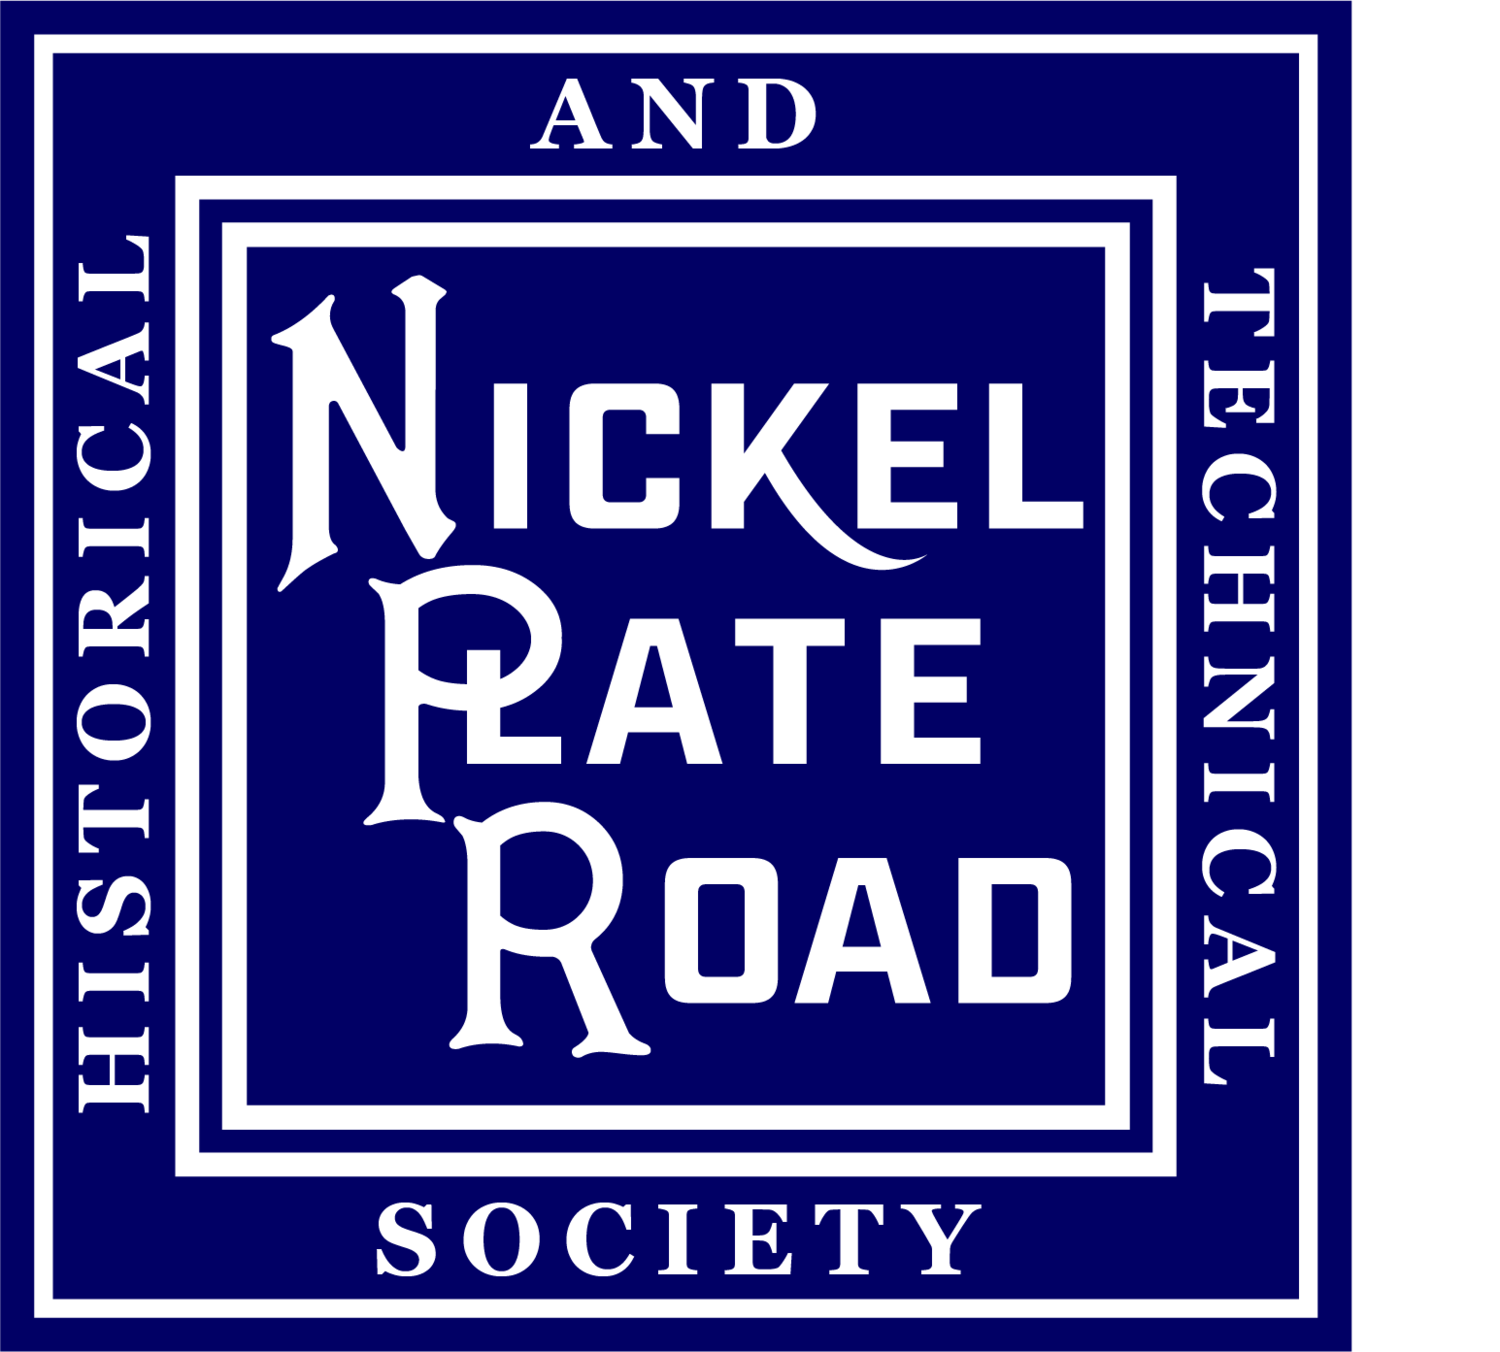 Nickel Plate Road Historical & Technical Society